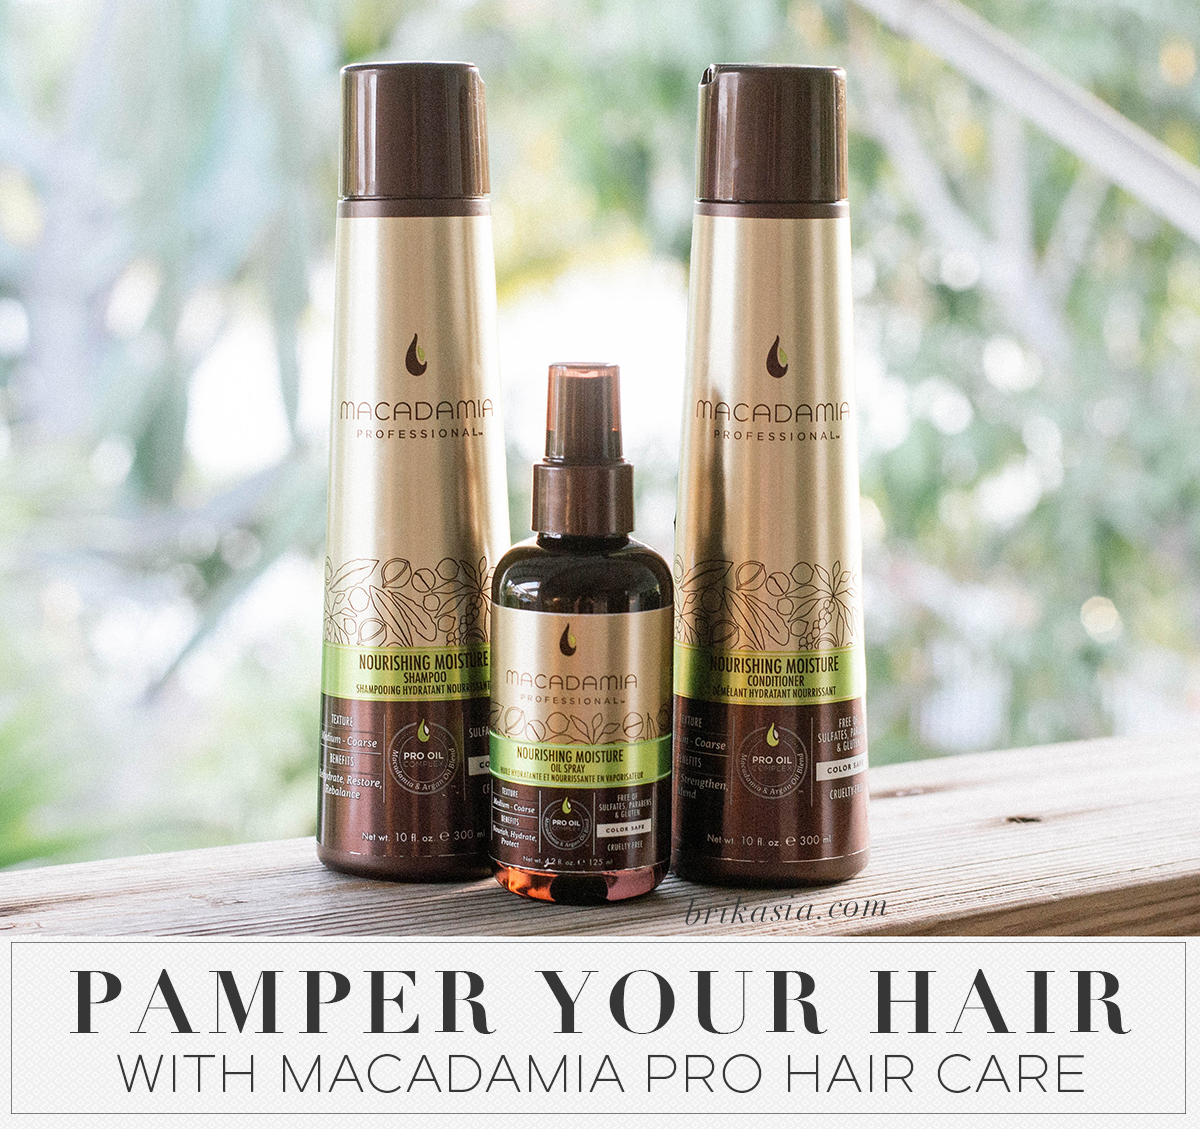 Pamper Your Hair with Macadamia PRO Hair Care, Macadamia Professional Hair Care, Nourishing Moisture Line, Macadamia Nourishing Moisture Shampoo, Macadamia Nourishing Moisture Conditioner, curly hair products, how to detangle hair, products for detangling hair,Macadamia Nourishing Moisture Oil Spray, review